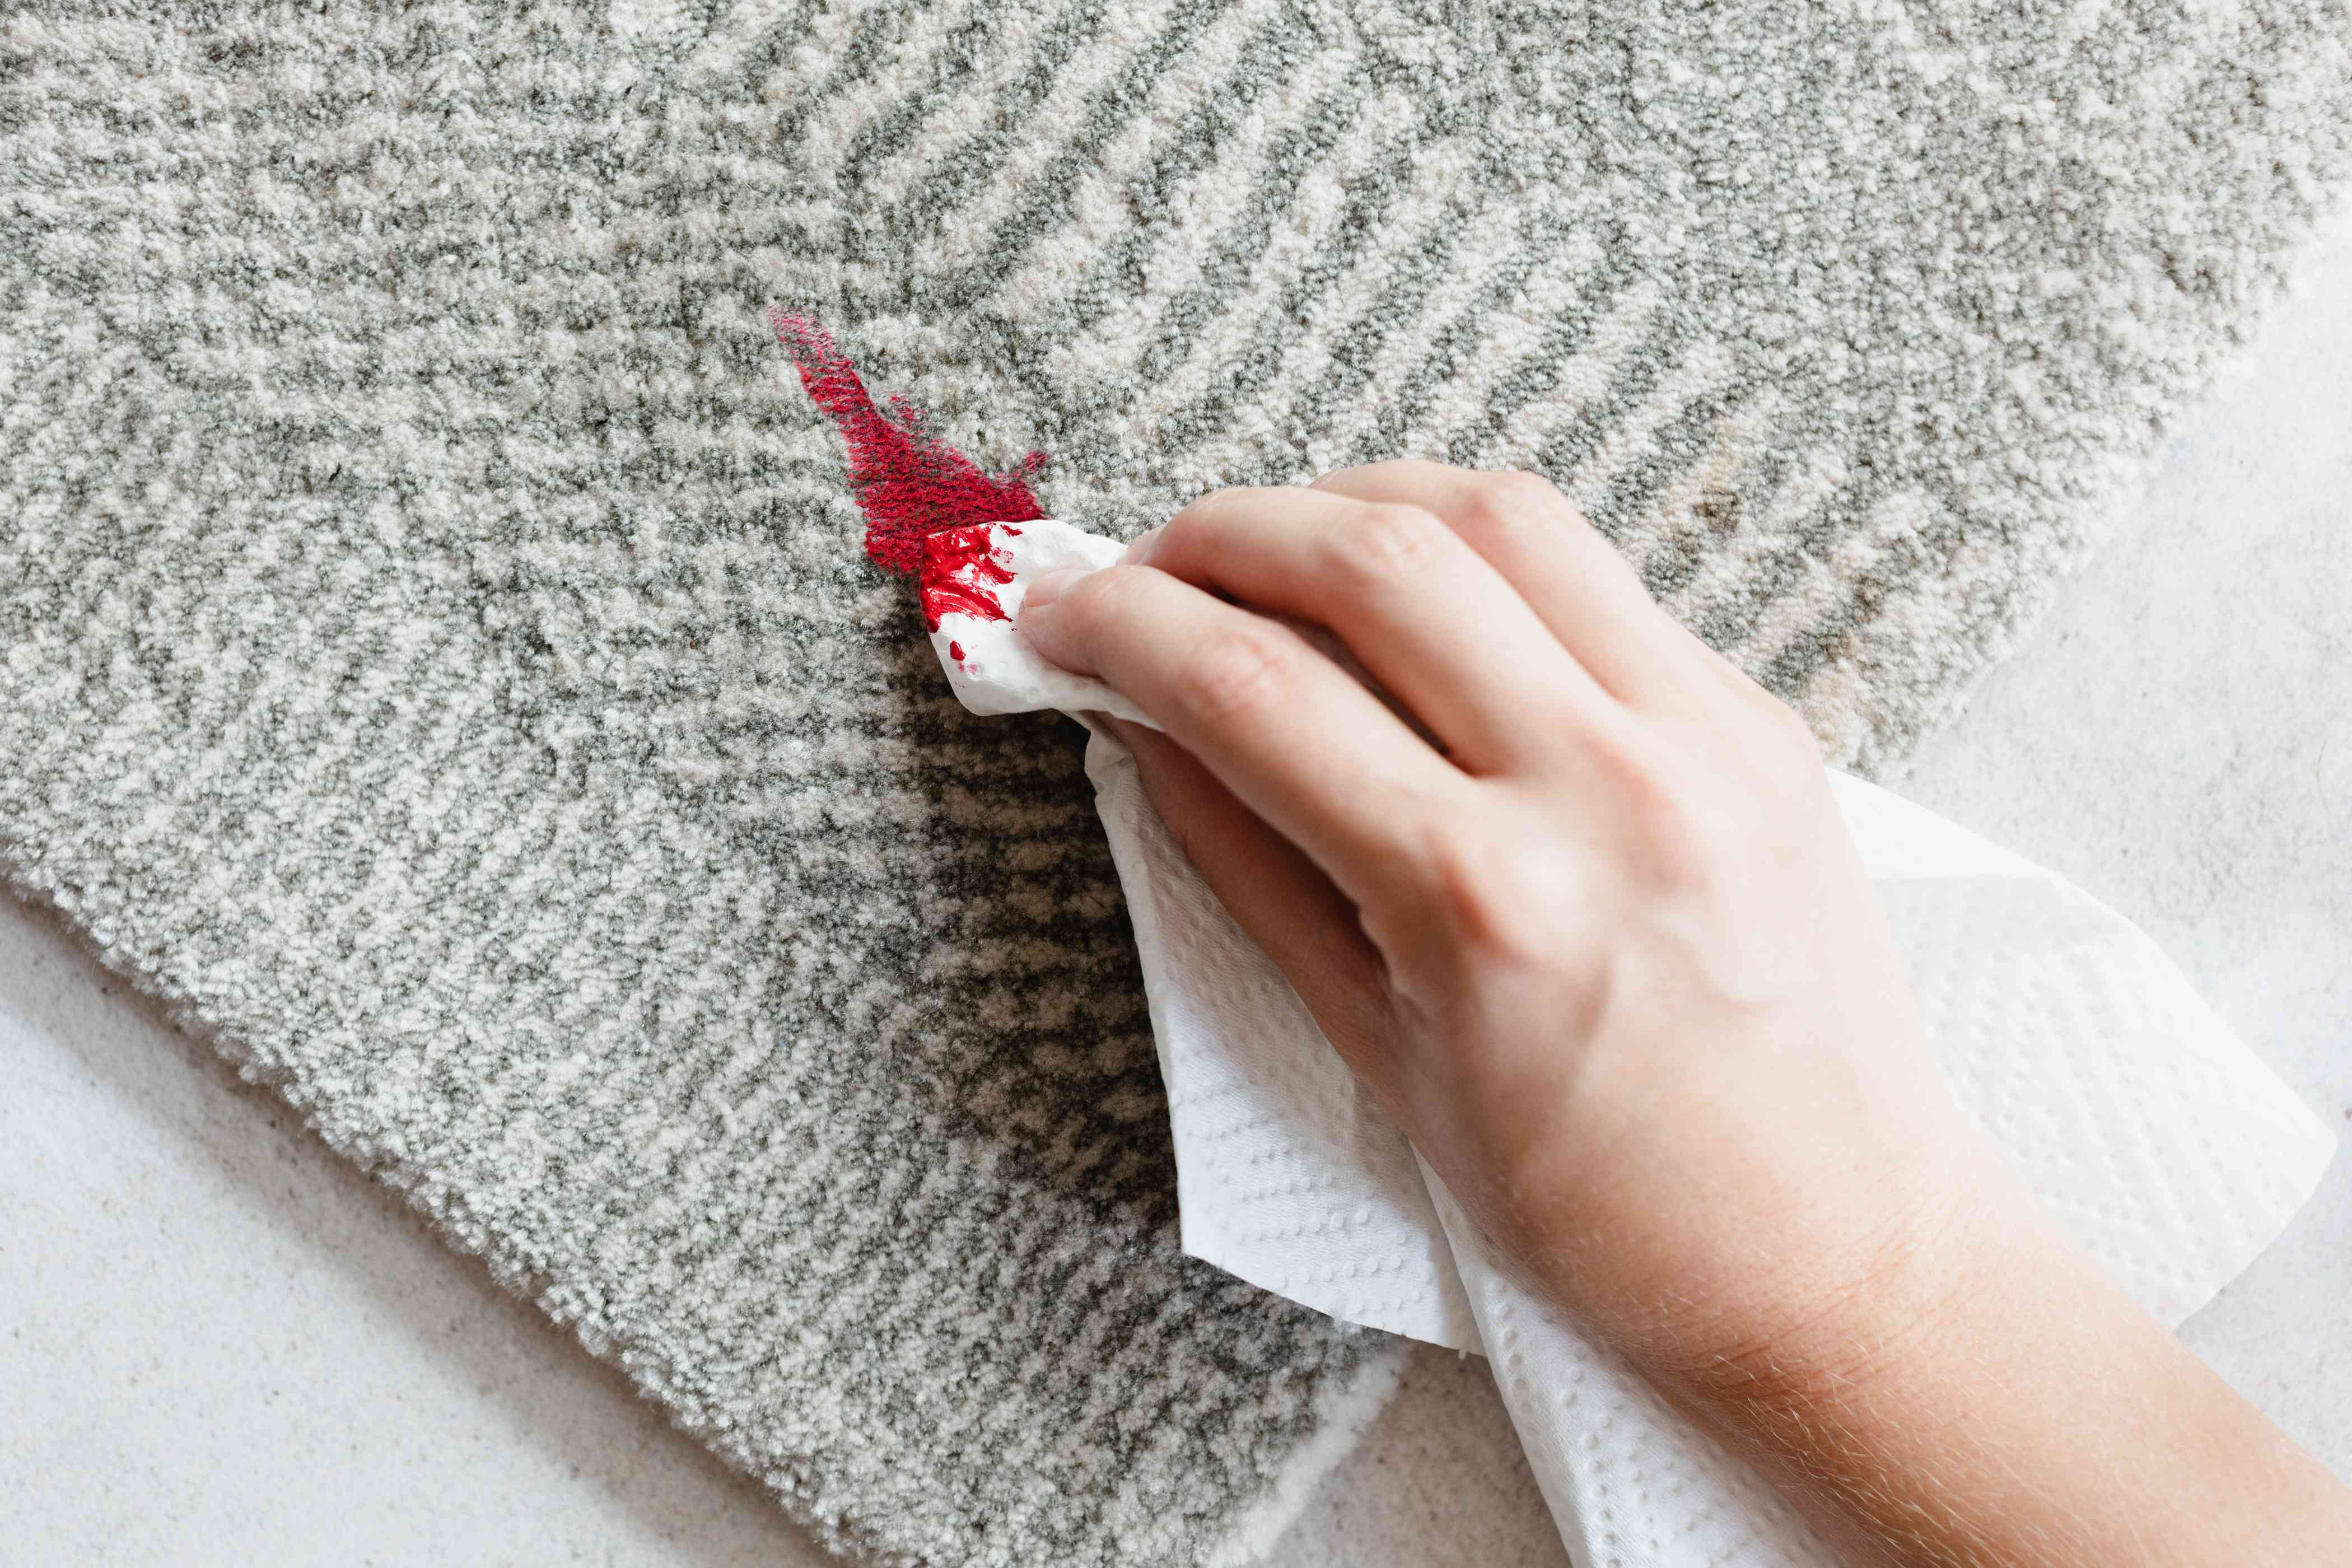 Red oil-based paint stain on gray carpet wiped with paper towel and paint thinner